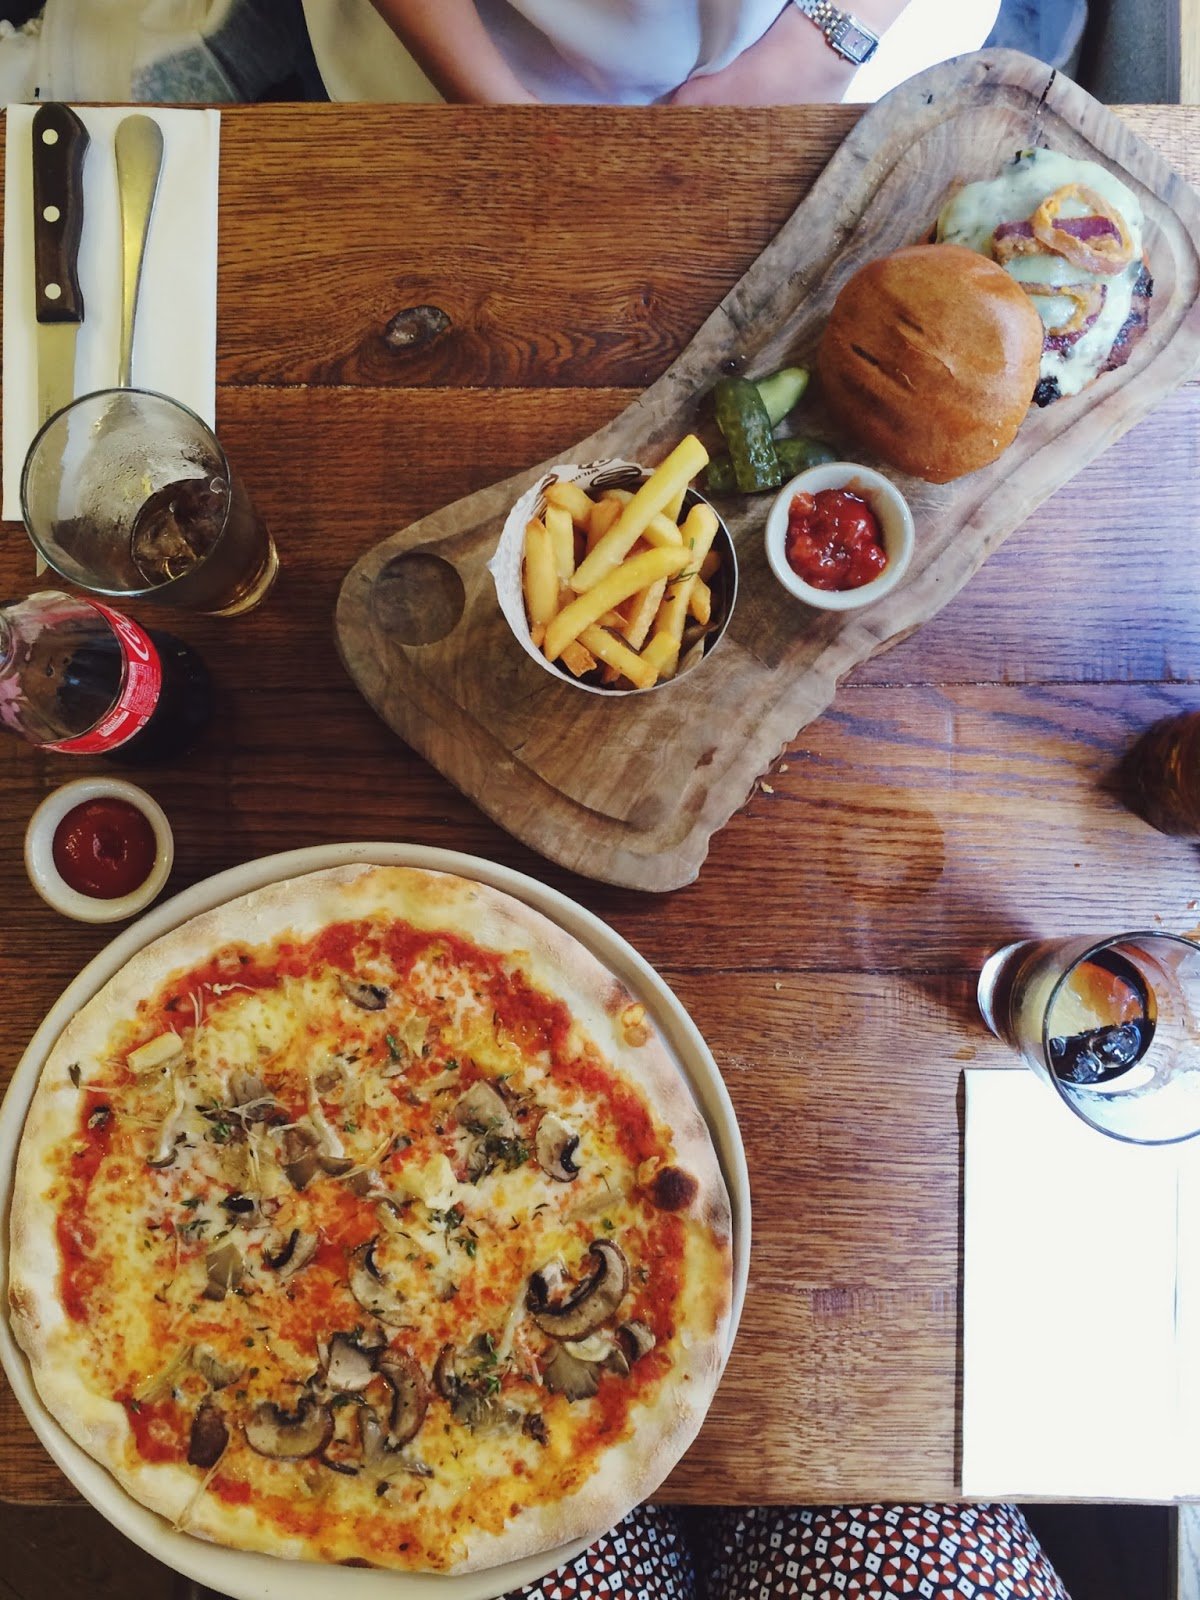 Wildwood Salisbury review, FashionFake, UK food blogs, wild mushroom pizza